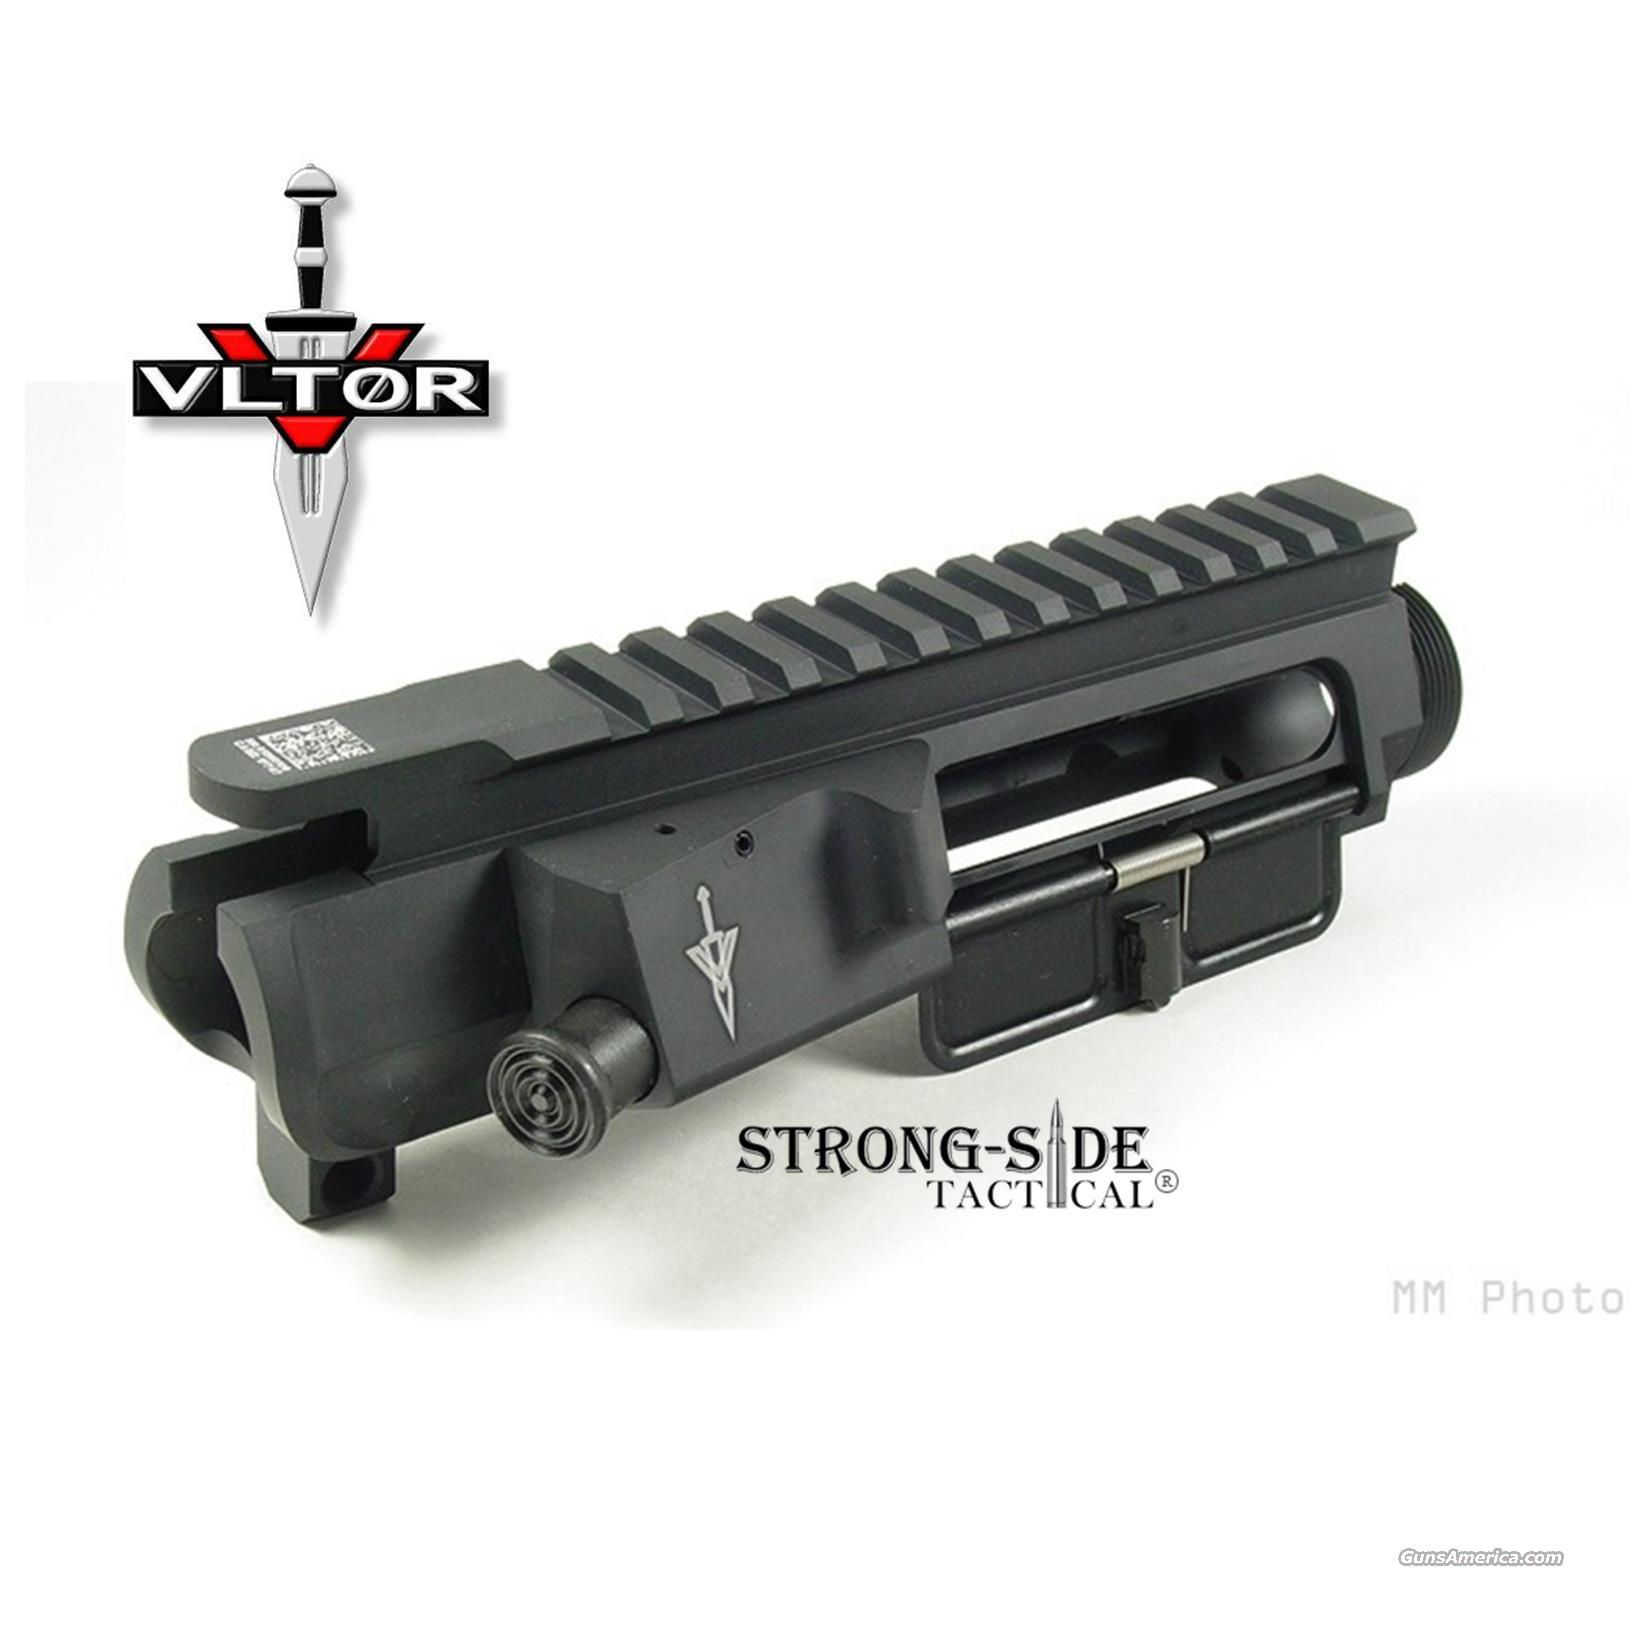 VLTOR MUR-1A UPPER RECEIVER (with  foward assist) FREE Shipping, No Credit Card fees  Non-Guns > Gun Parts > M16-AR15